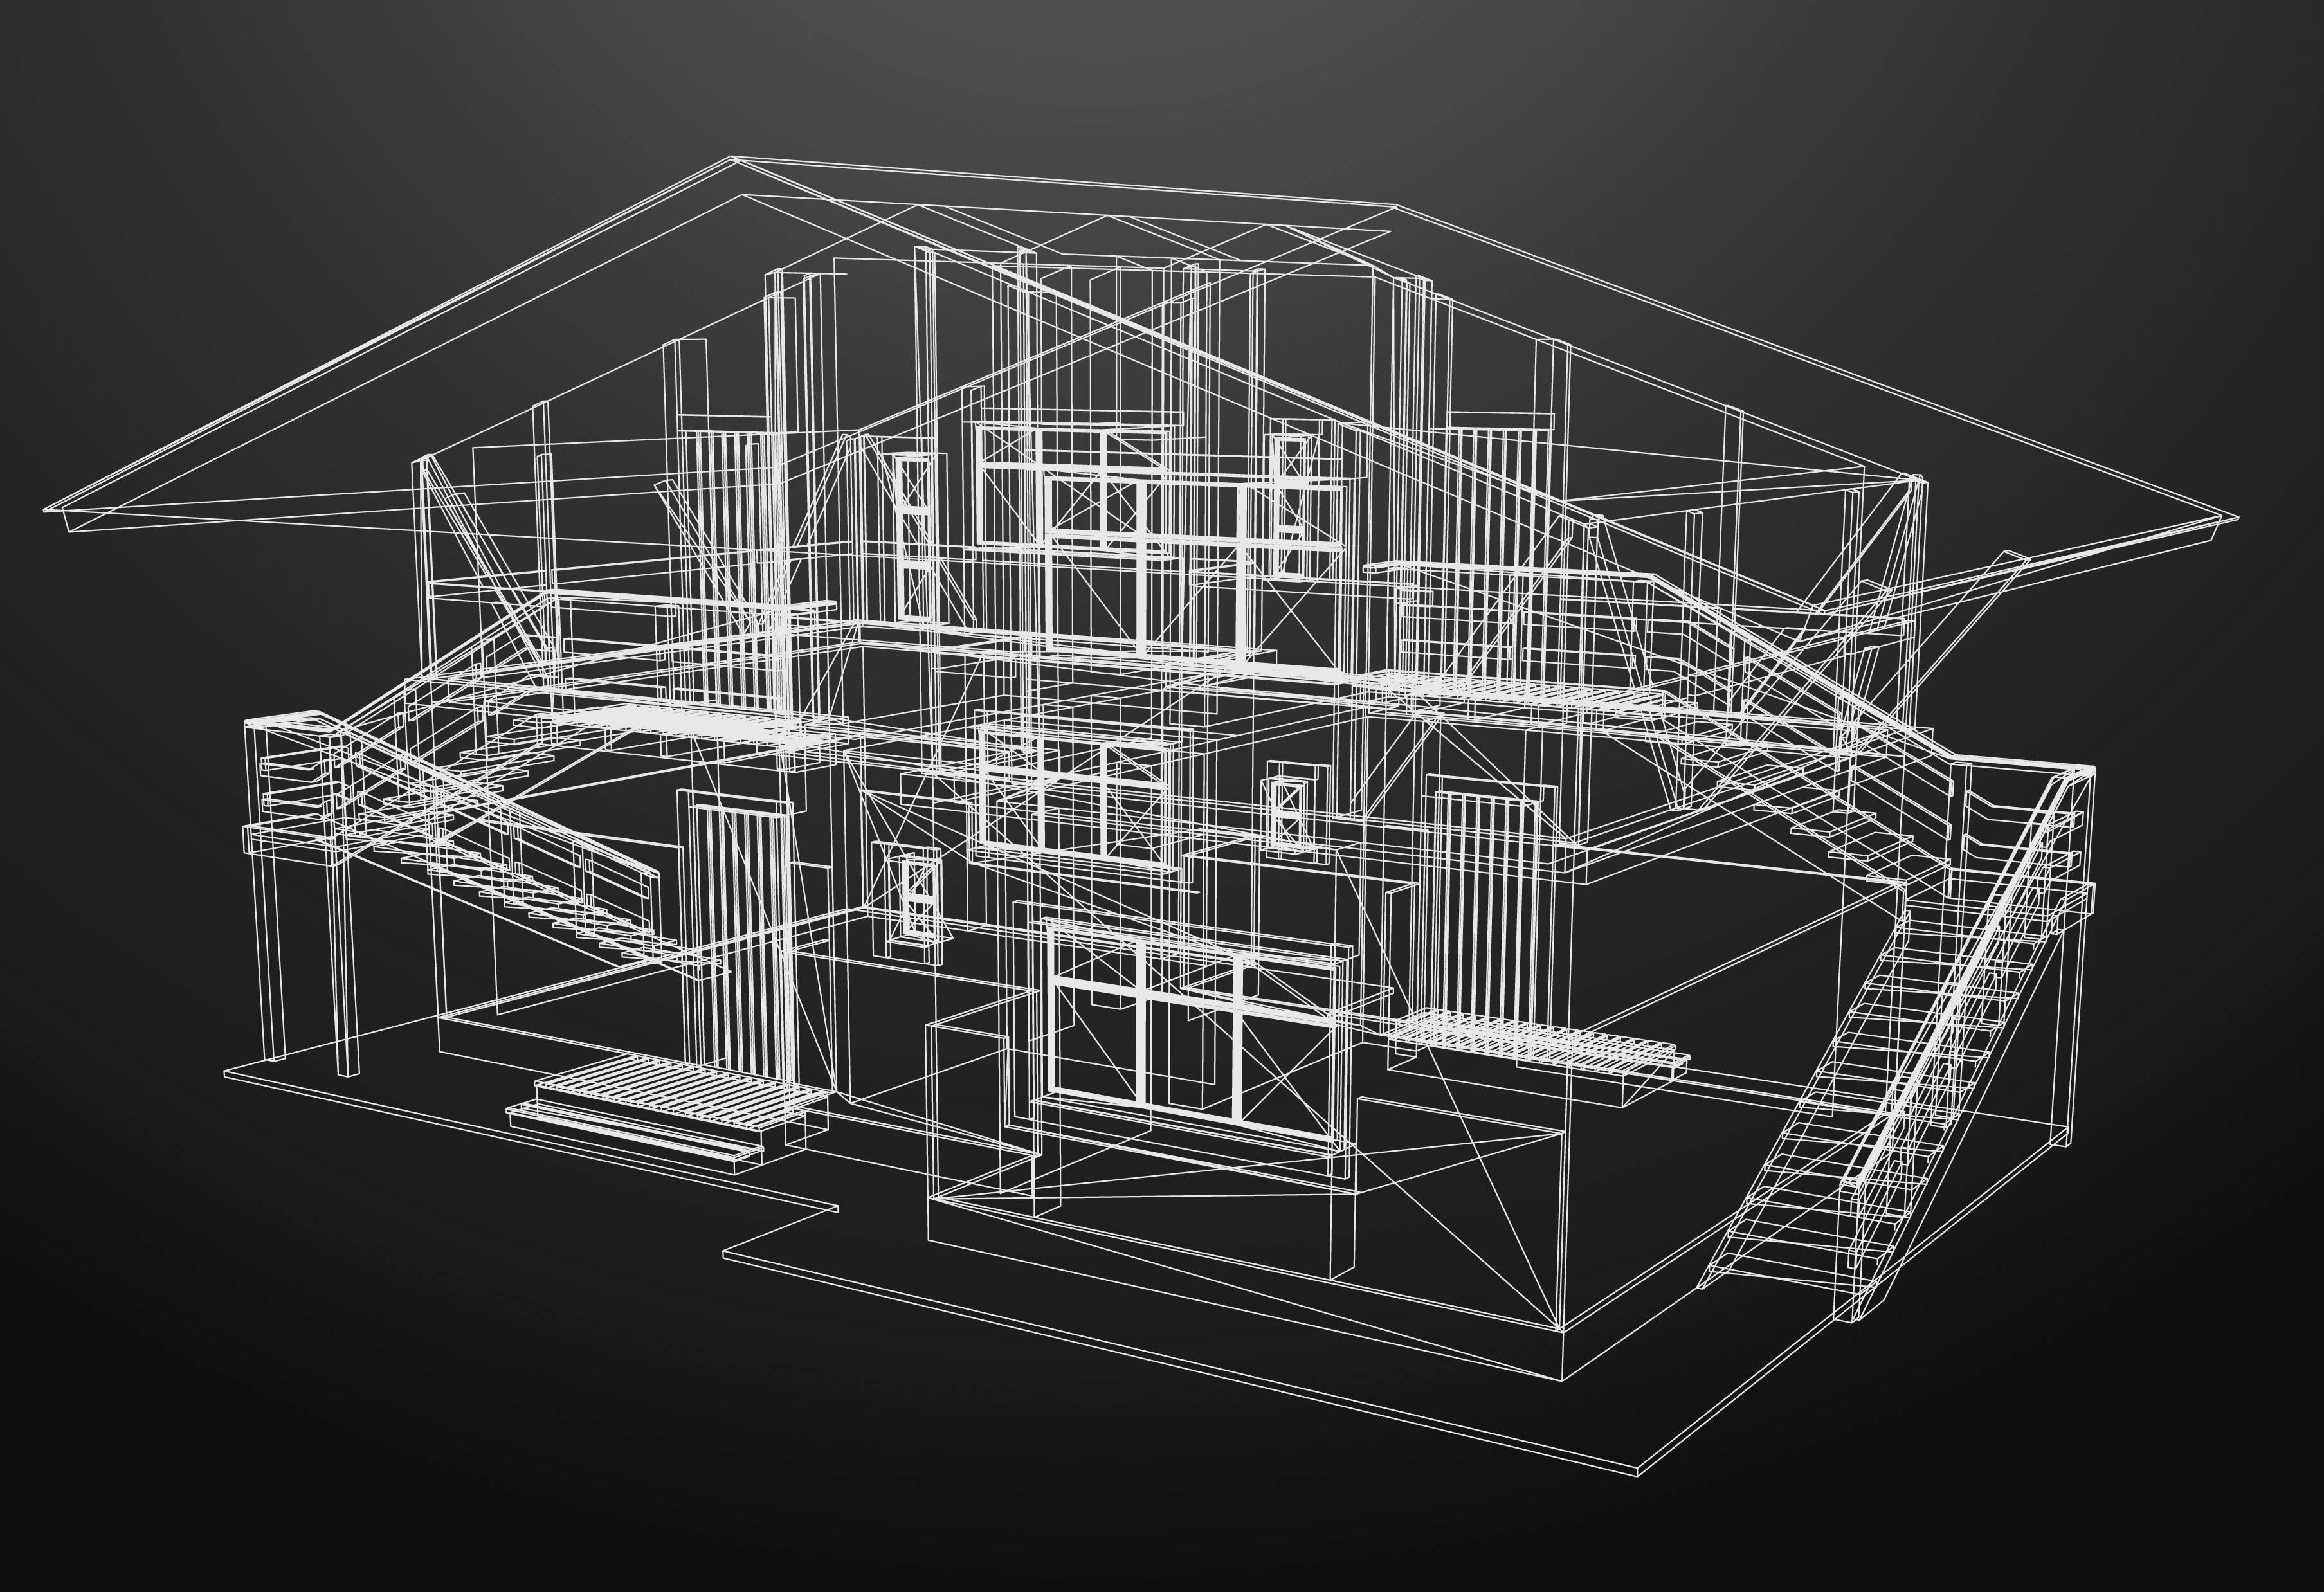 HOUSE_Rendering_High_Resolution